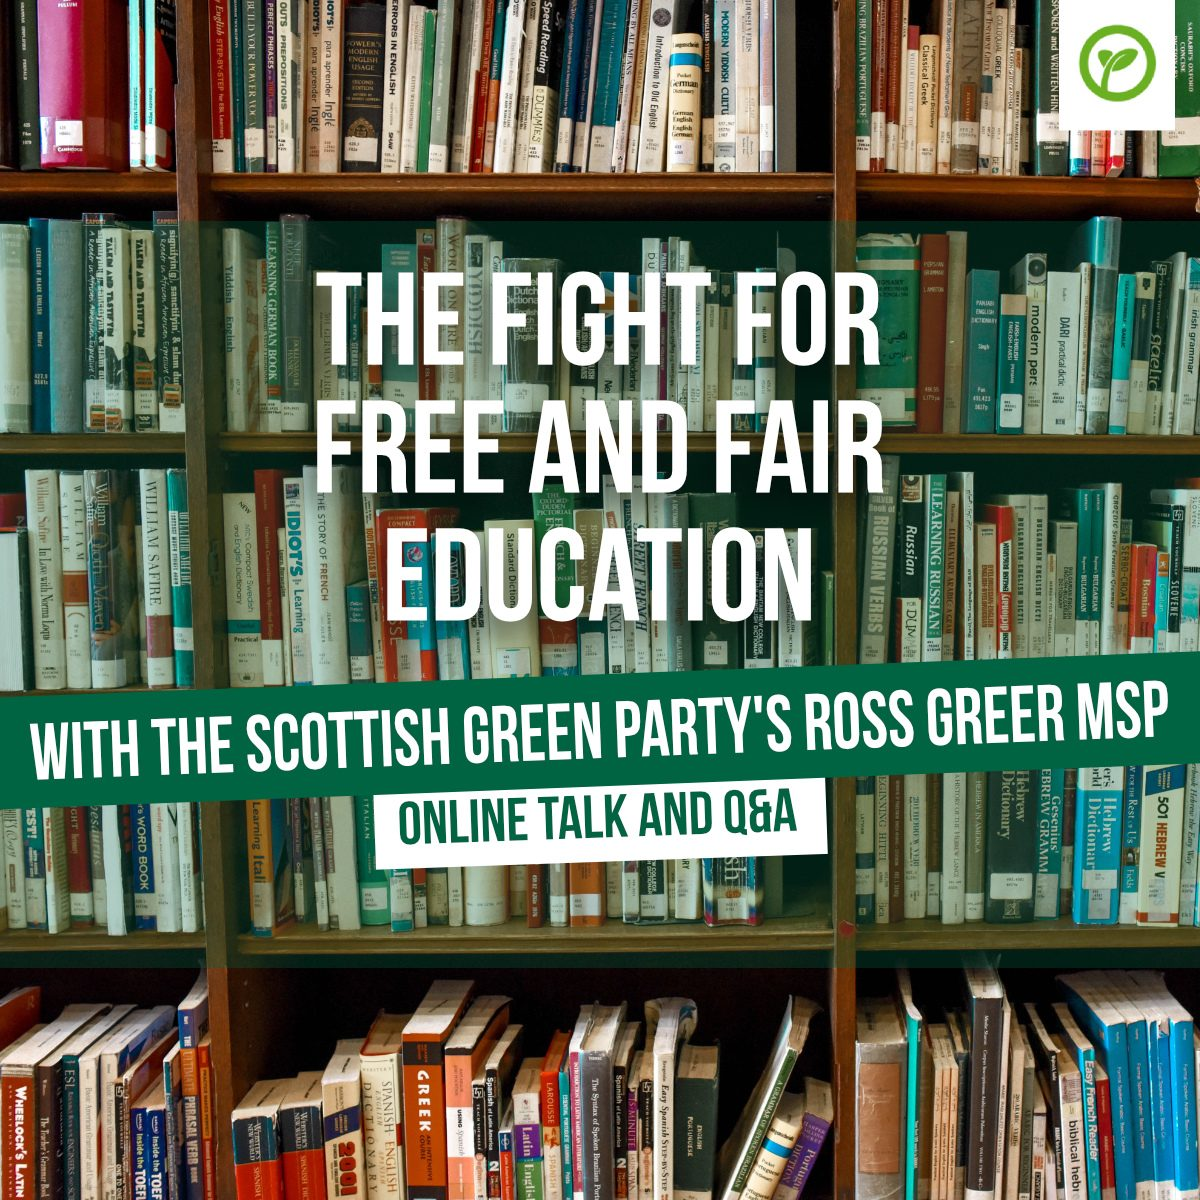 The fight for free and fair education with the Scottish Green Party's Ross Greer MSP. Online talk and Q&A.